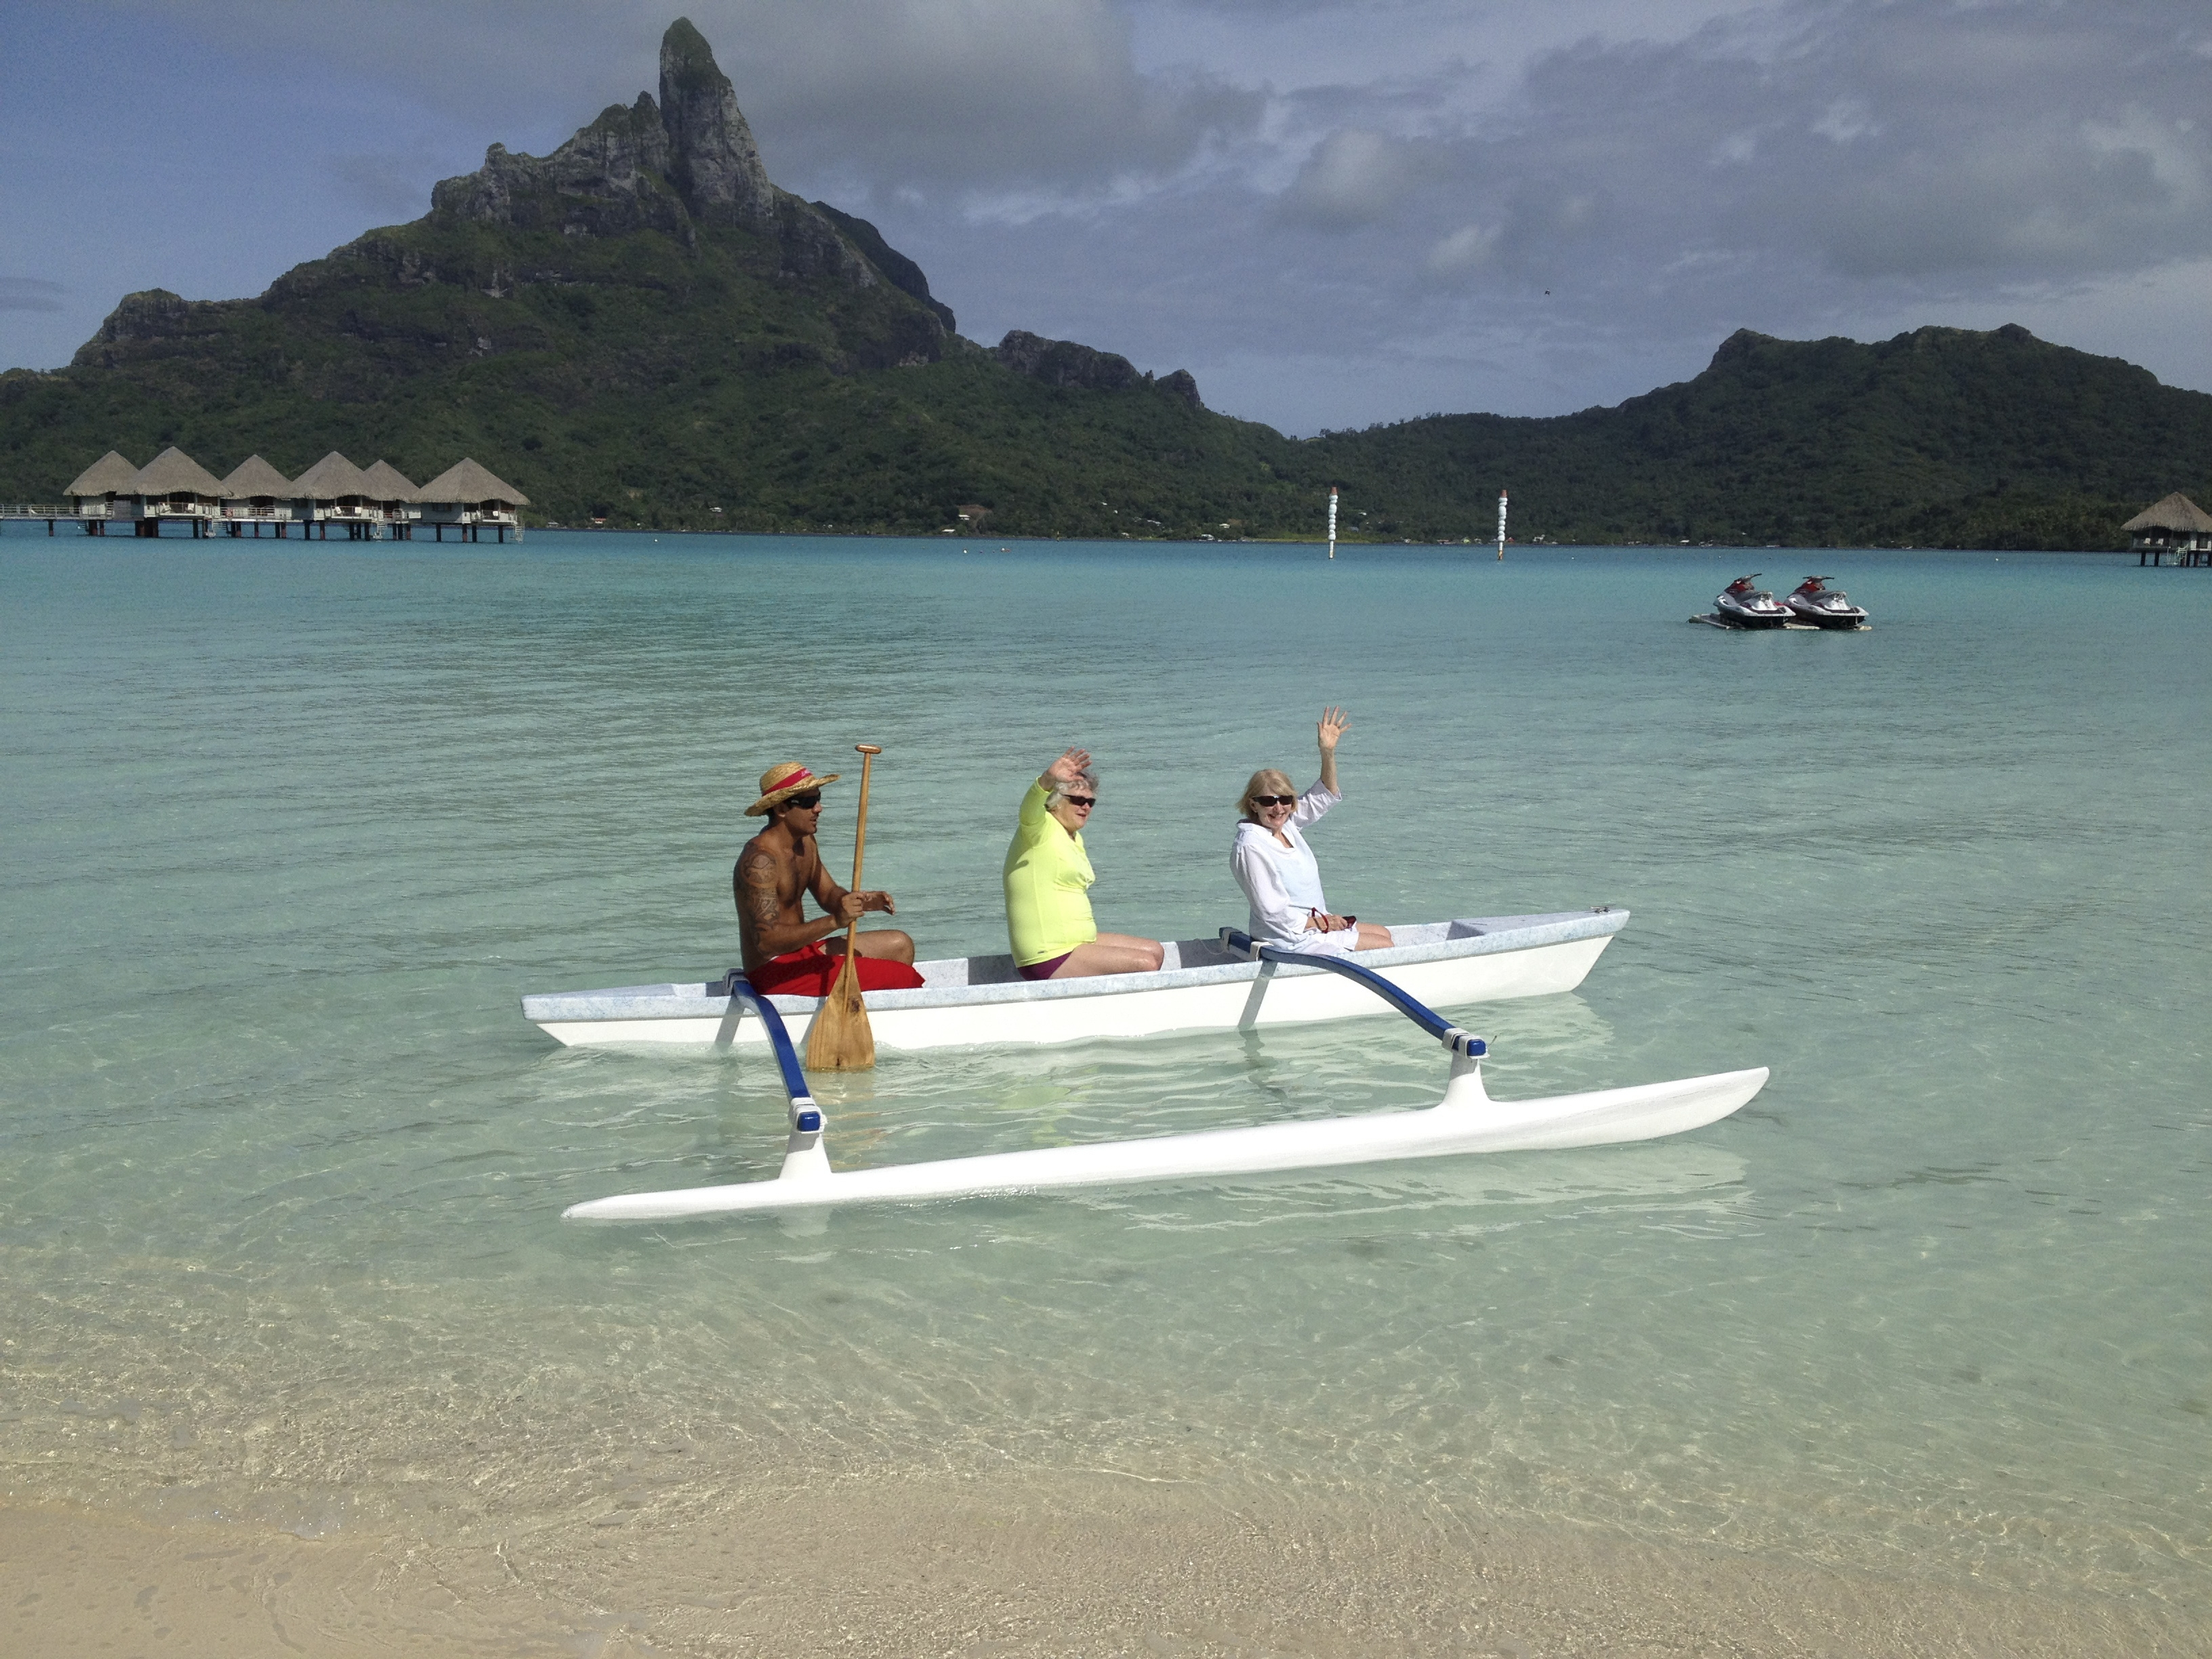 """Leanne Robinson, 70, right, visits Bora Bora to gather knowledge in hopes of leading a trip there for Road Scholar, formerly Elderhostel. She has found a """"pretty nice working environment"""" as a baby boomer redefining retirement through exotic jobs."""